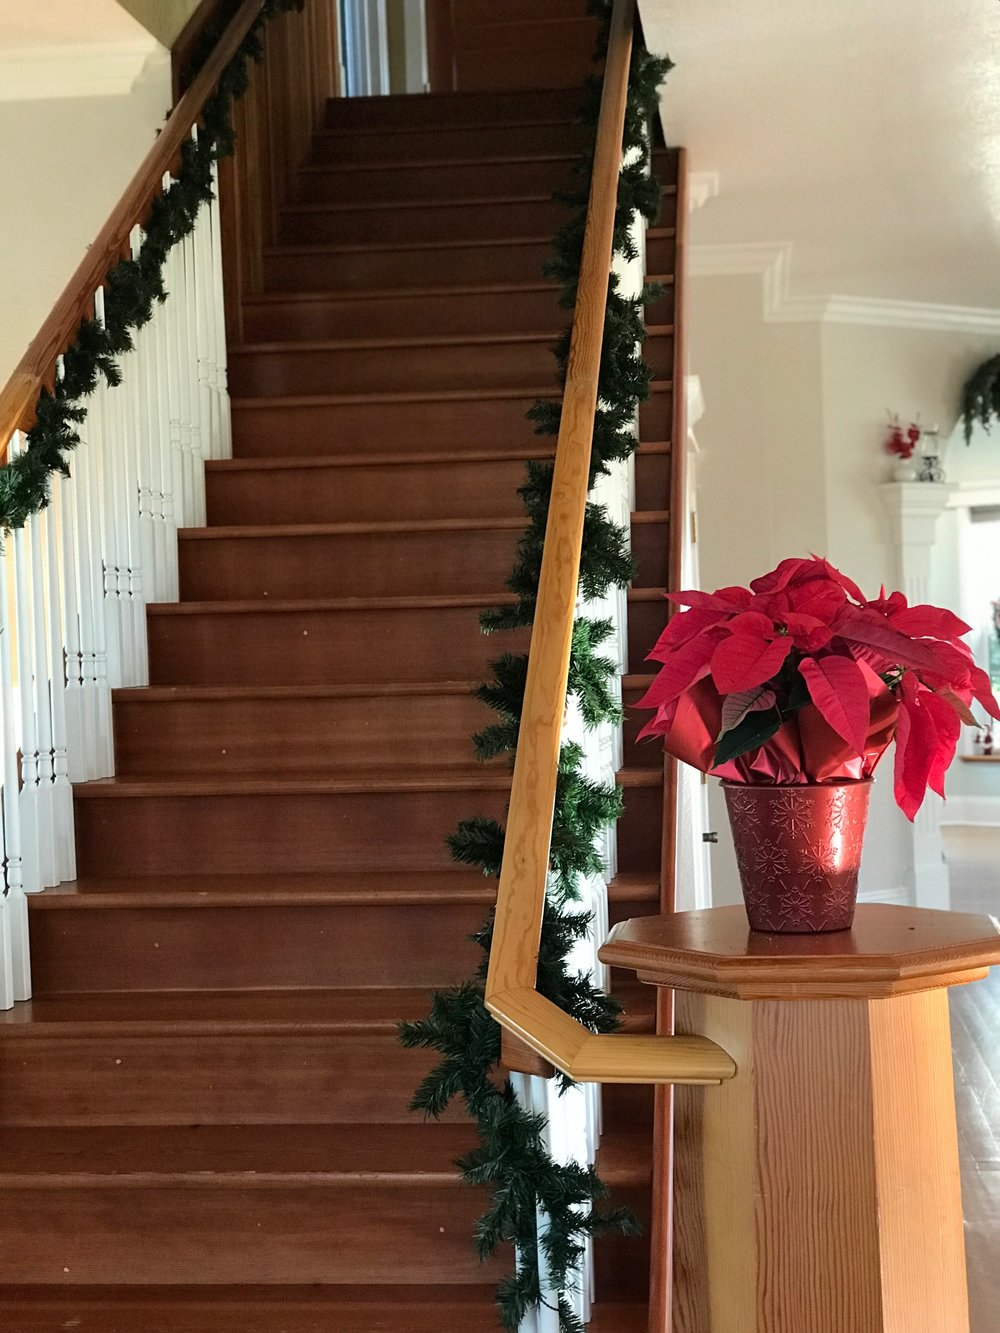 The Farm House. - With the wooden elements, and the beautiful Christmas decor, it's hard not to fall in love with this simple, yet elegant farm house nestled in butte county's rolling hills.